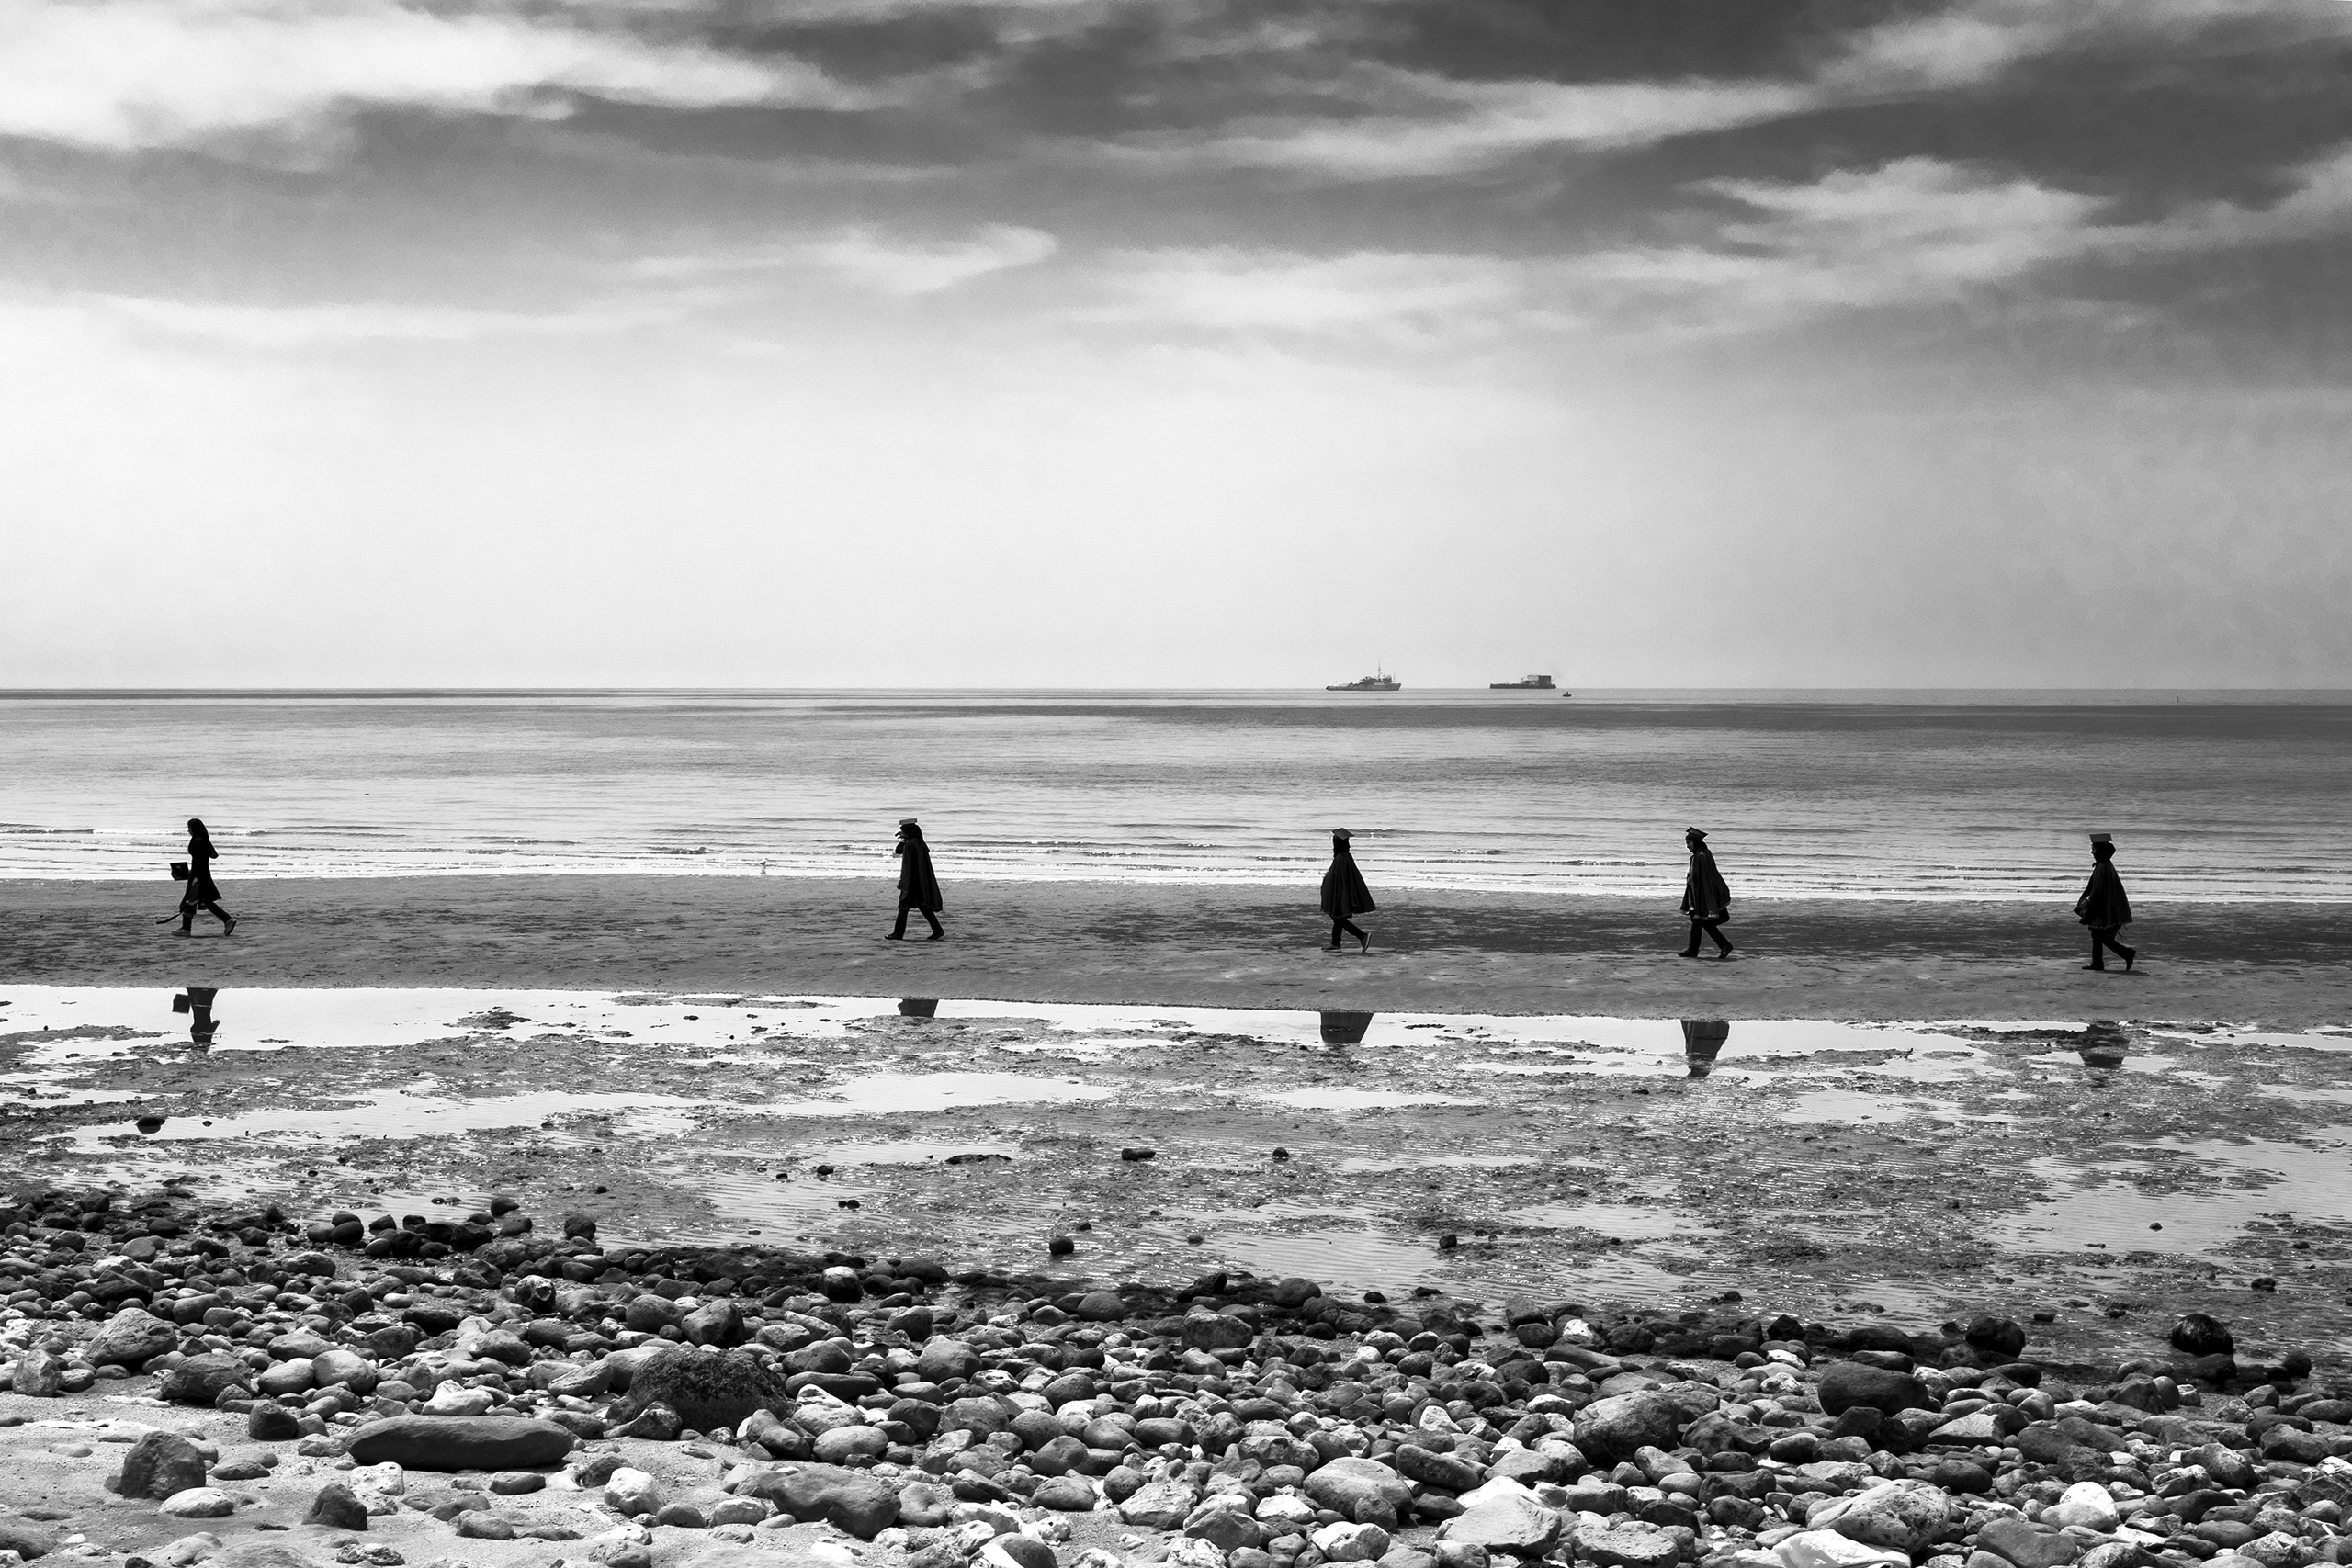 Students walk by the seaside in Dayyer, Persian Gulf, Iran, where two months earlier, there was severe flooding. Iran's coastline is in danger of  rising seas, May 2016.